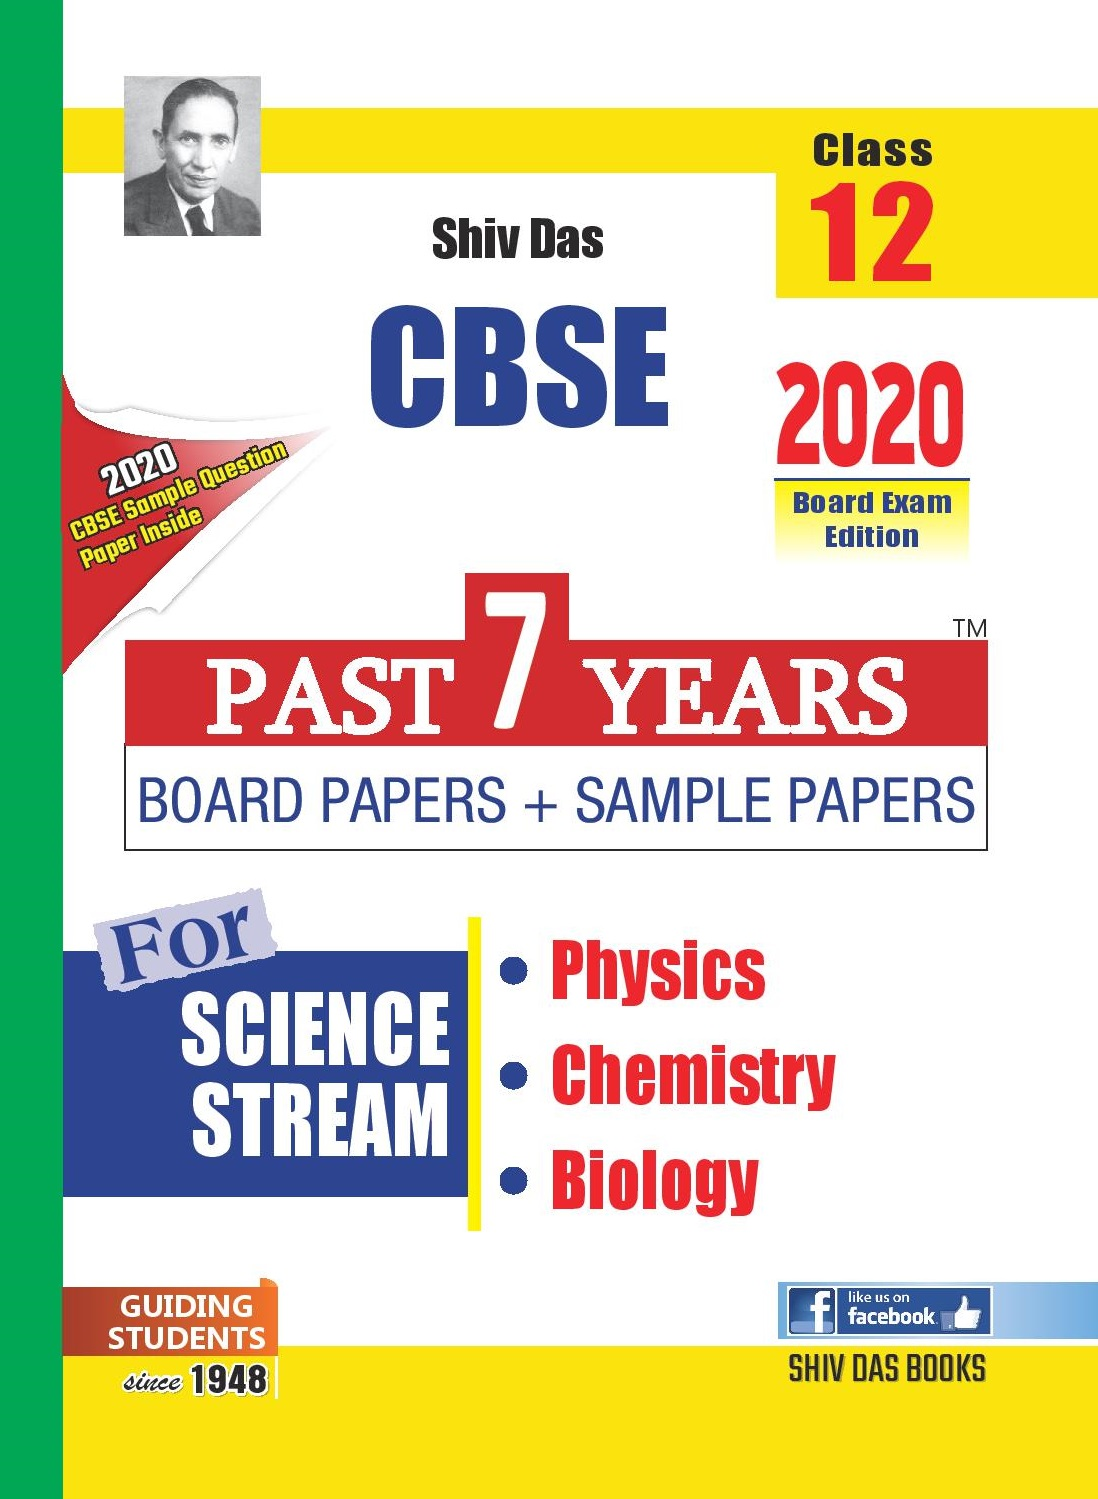 CBSE Past 7 Years Board Papers and Sample Papers Science Stream Combo : Physics, Chemistry, Biology for Class 12 (2020 Board Exam Edition)